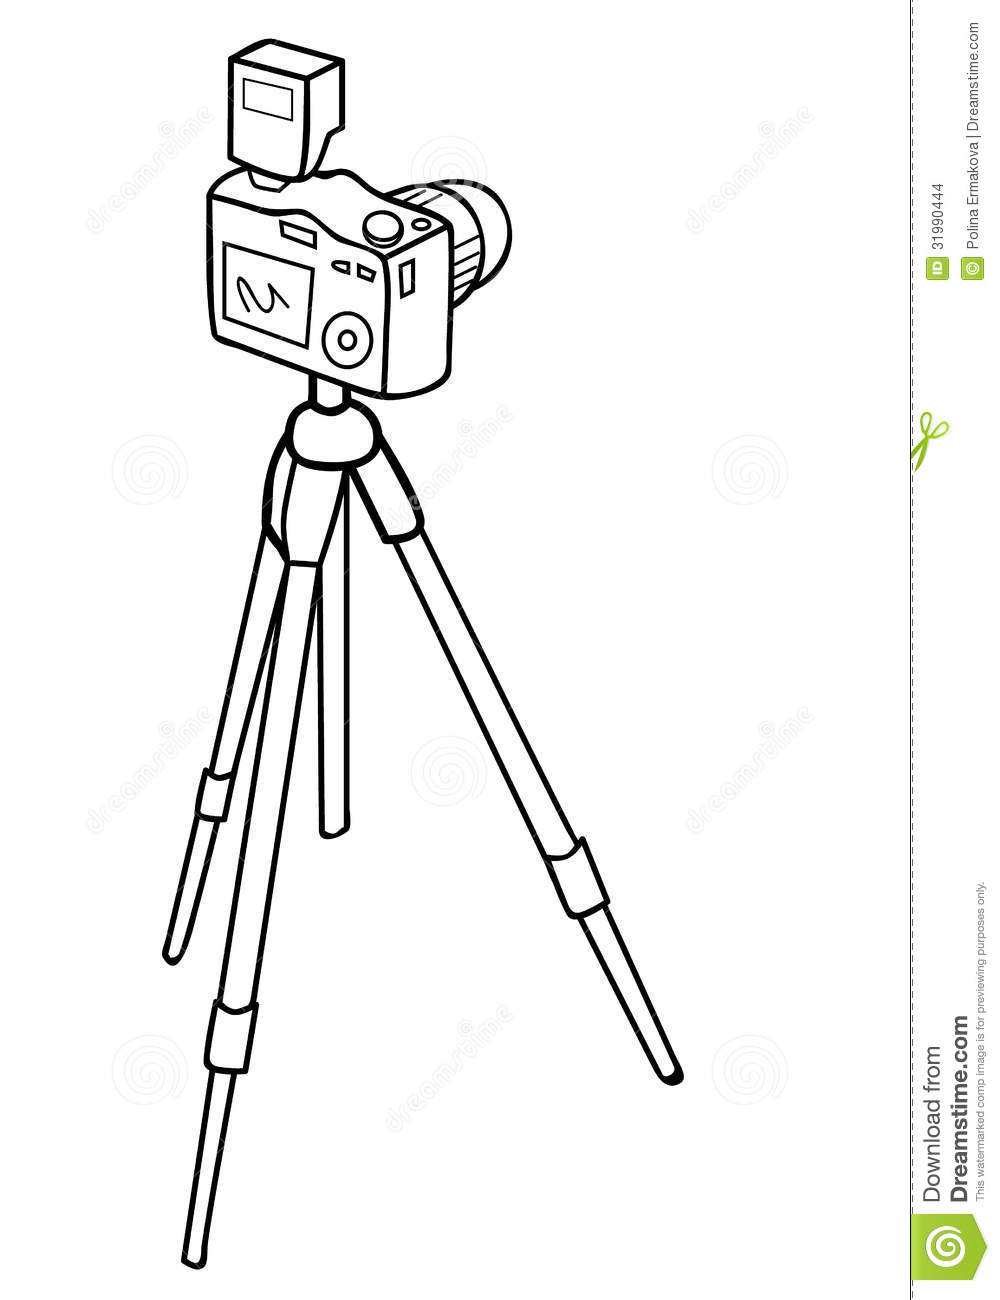 Stock Images Camera Vector Illustration Tripod Image31990444 also Royalty Free Stock Image City Skyline European Countries Set Silhouettes Cities Image38983736 additionally Royalty Free Stock Photo Sport Vector Image7860555 further Stock Photos Vector Soccer Logo Emblems Image14436823 besides File Map of Clarion County  Pennsylvania. on united states map